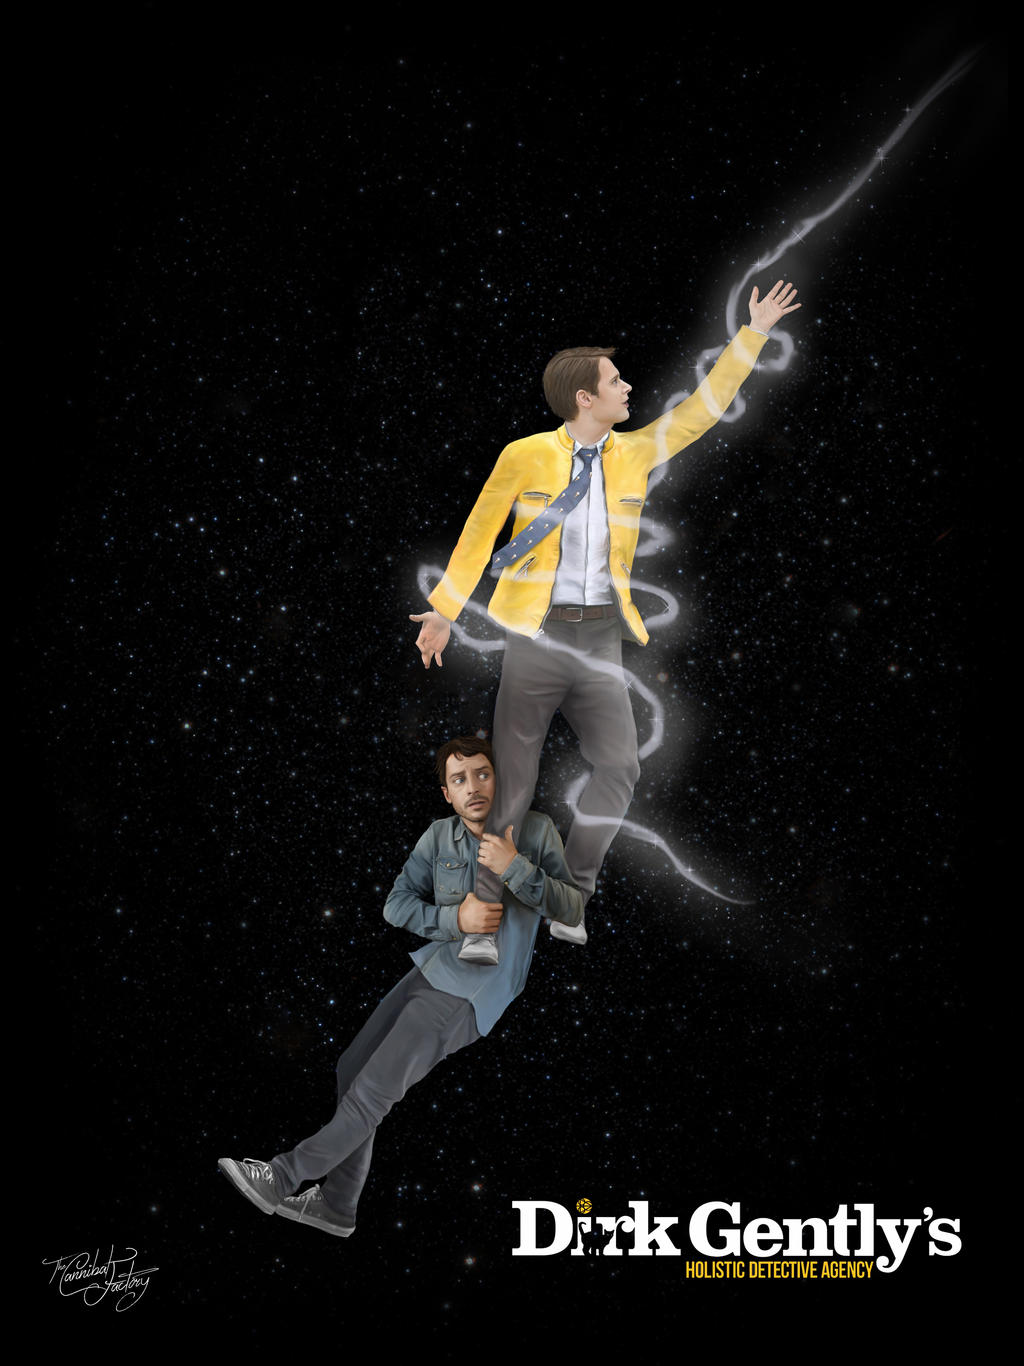 Dirk Gently's Holistic Detective Agency ICARUS